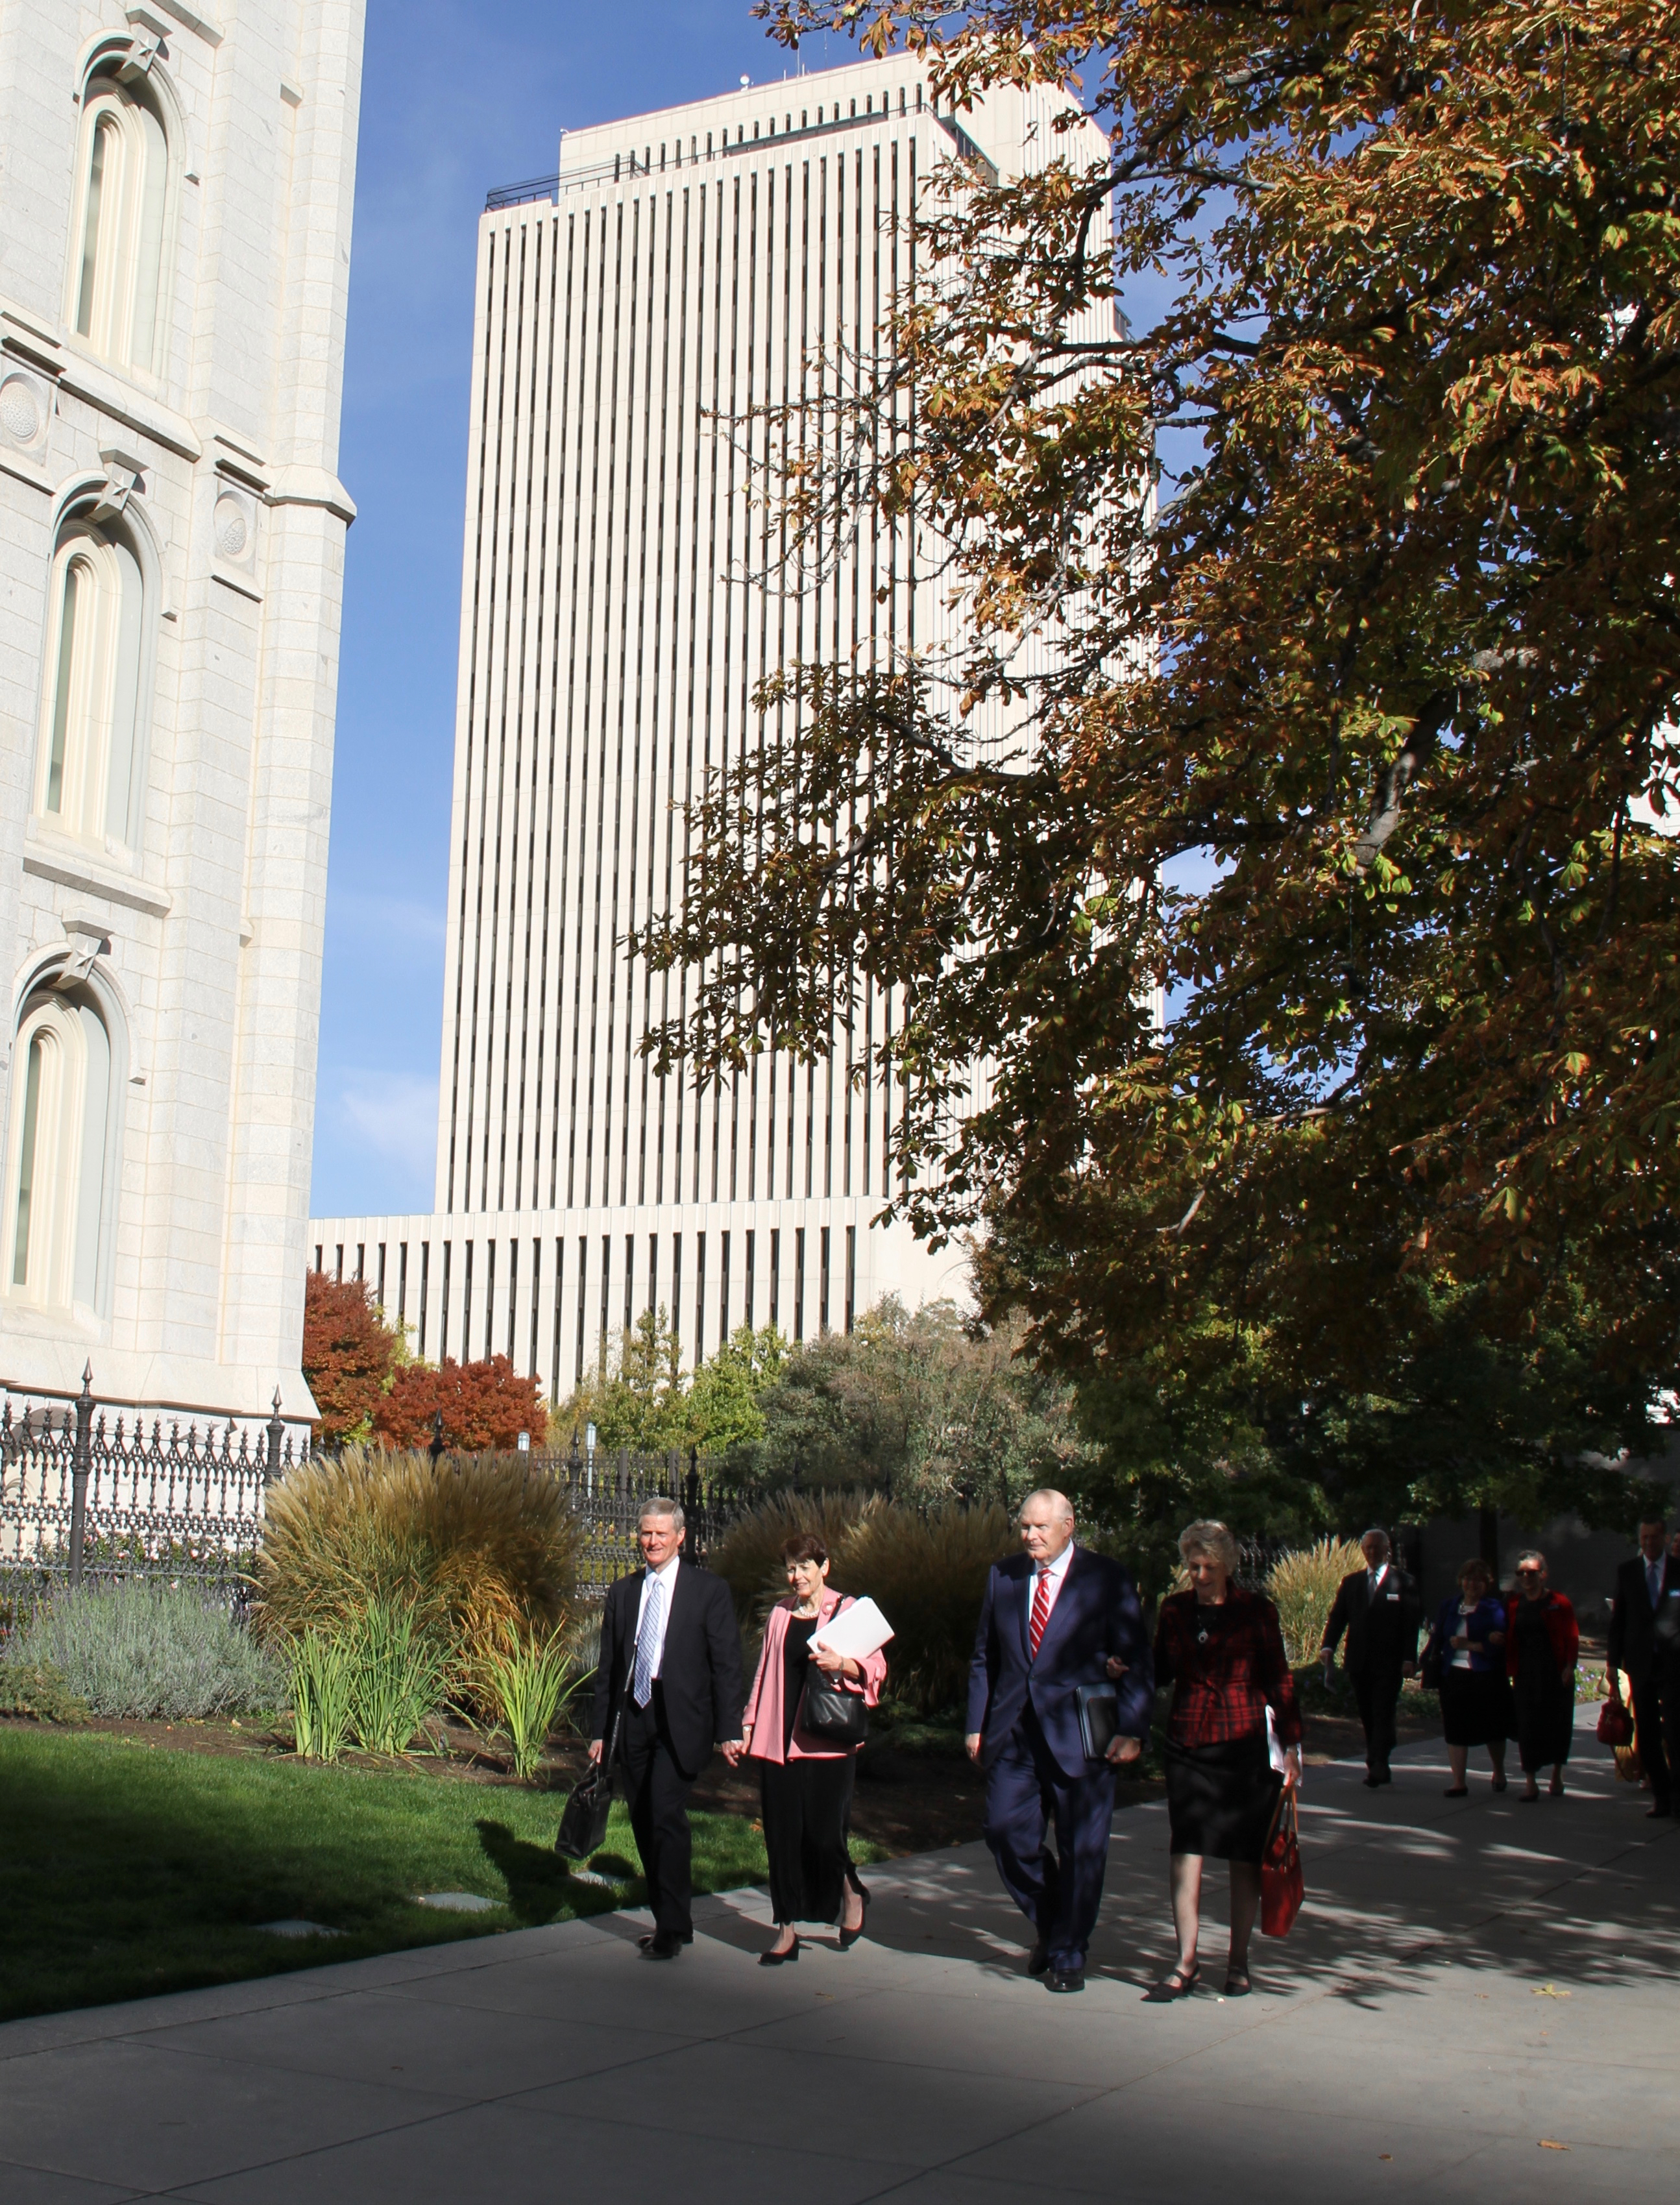 From left, Elder David A. Bednar, Sister Susan Bednar, Elder Dale G. Renlund and Sister Ruth Renlund walk along Temple Square, leading out a group of 62 couples of newly called temple presidents and matrons attending the 2019 Temple Leadership Seminar Oct. 14-17 in Salt Lake City, Utah.